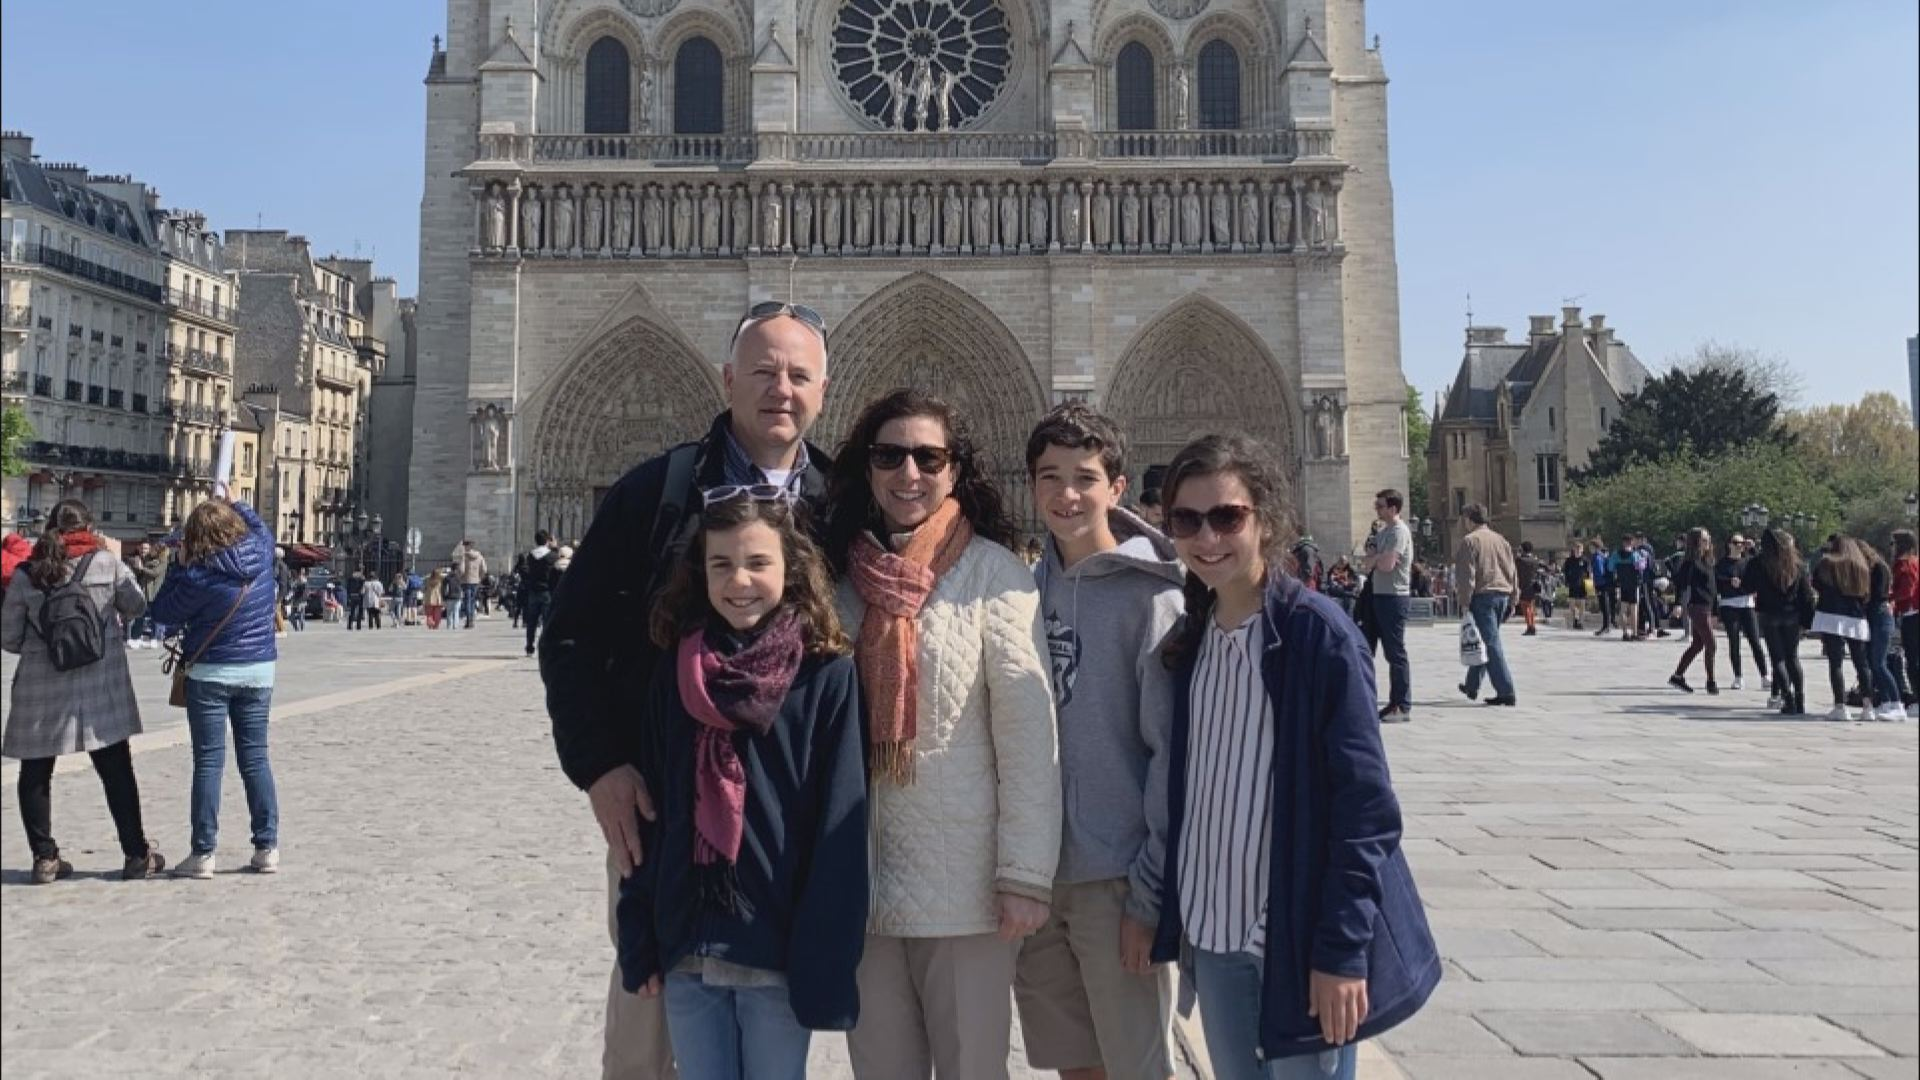 FAMILY REACTS TO CATHEDRAL3_1555730498224.jpg.jpg